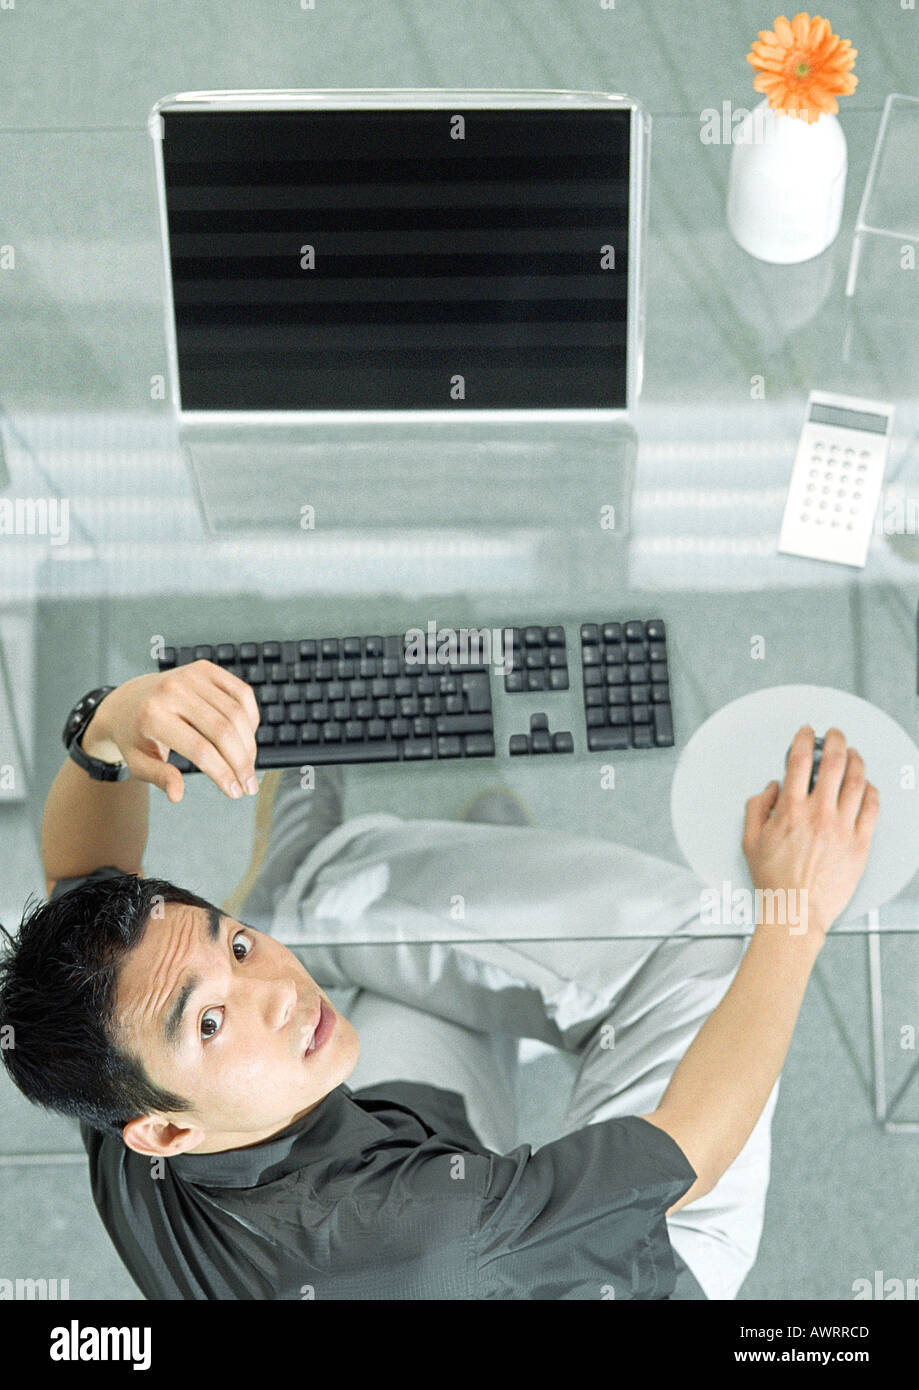 Man at desk with futuristic devices, high angle view, portrait - Stock Image